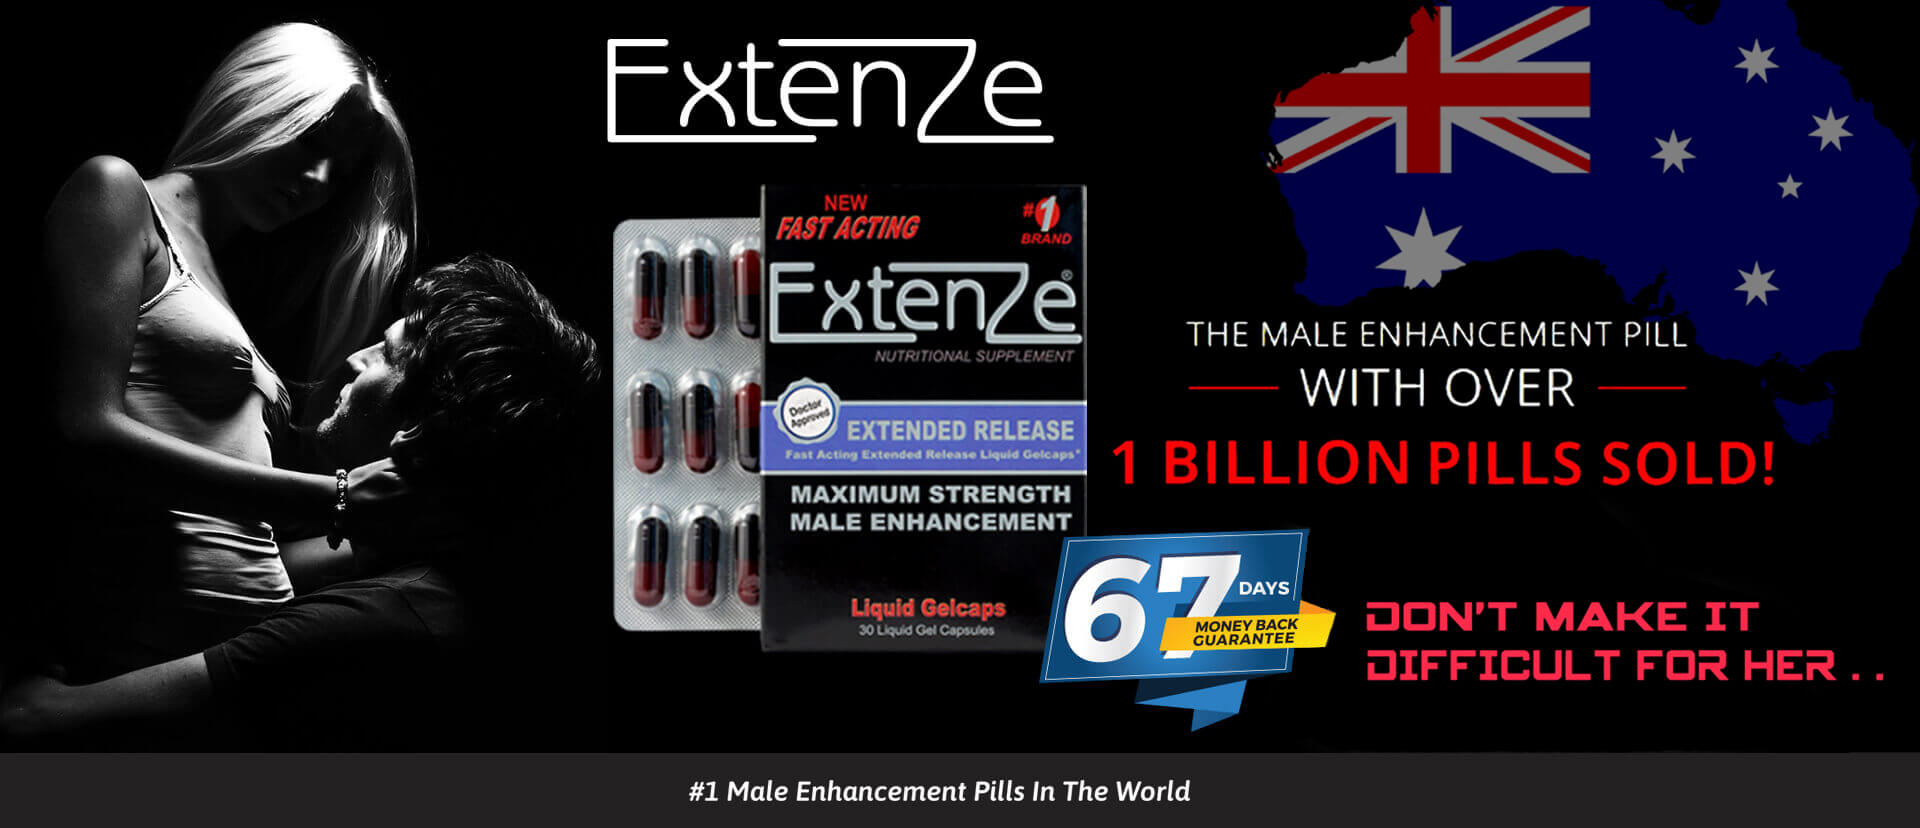 Gnc Enlargement Pills